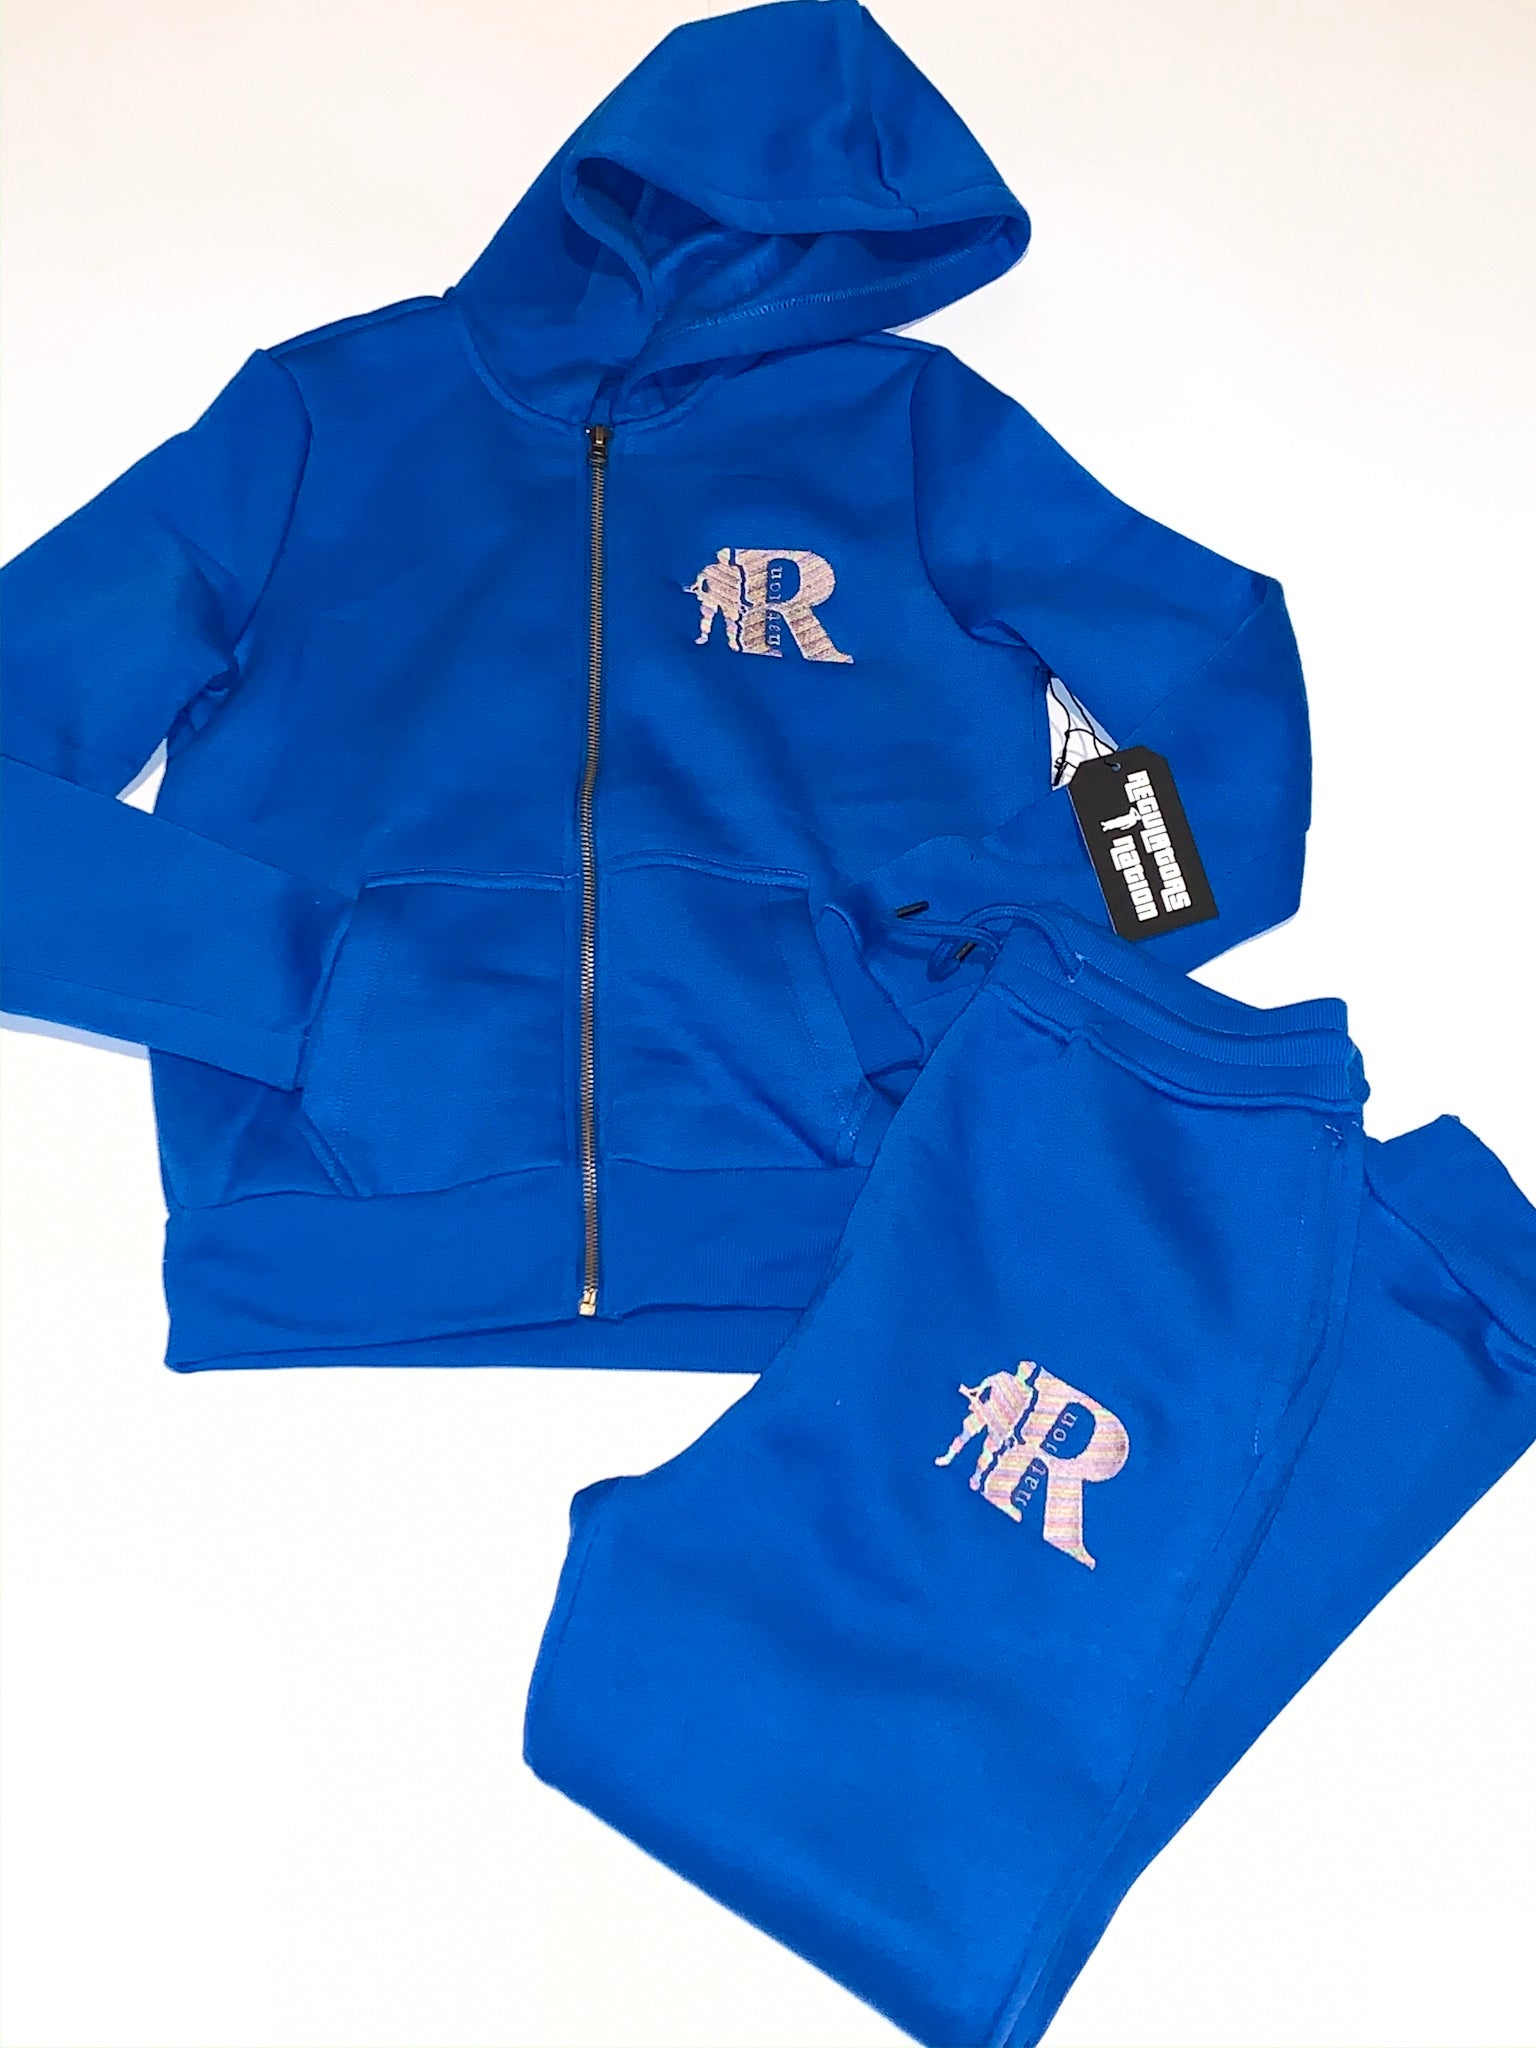 Regulators Nation's KIDS sweatsuit (royal blue & multicolor)